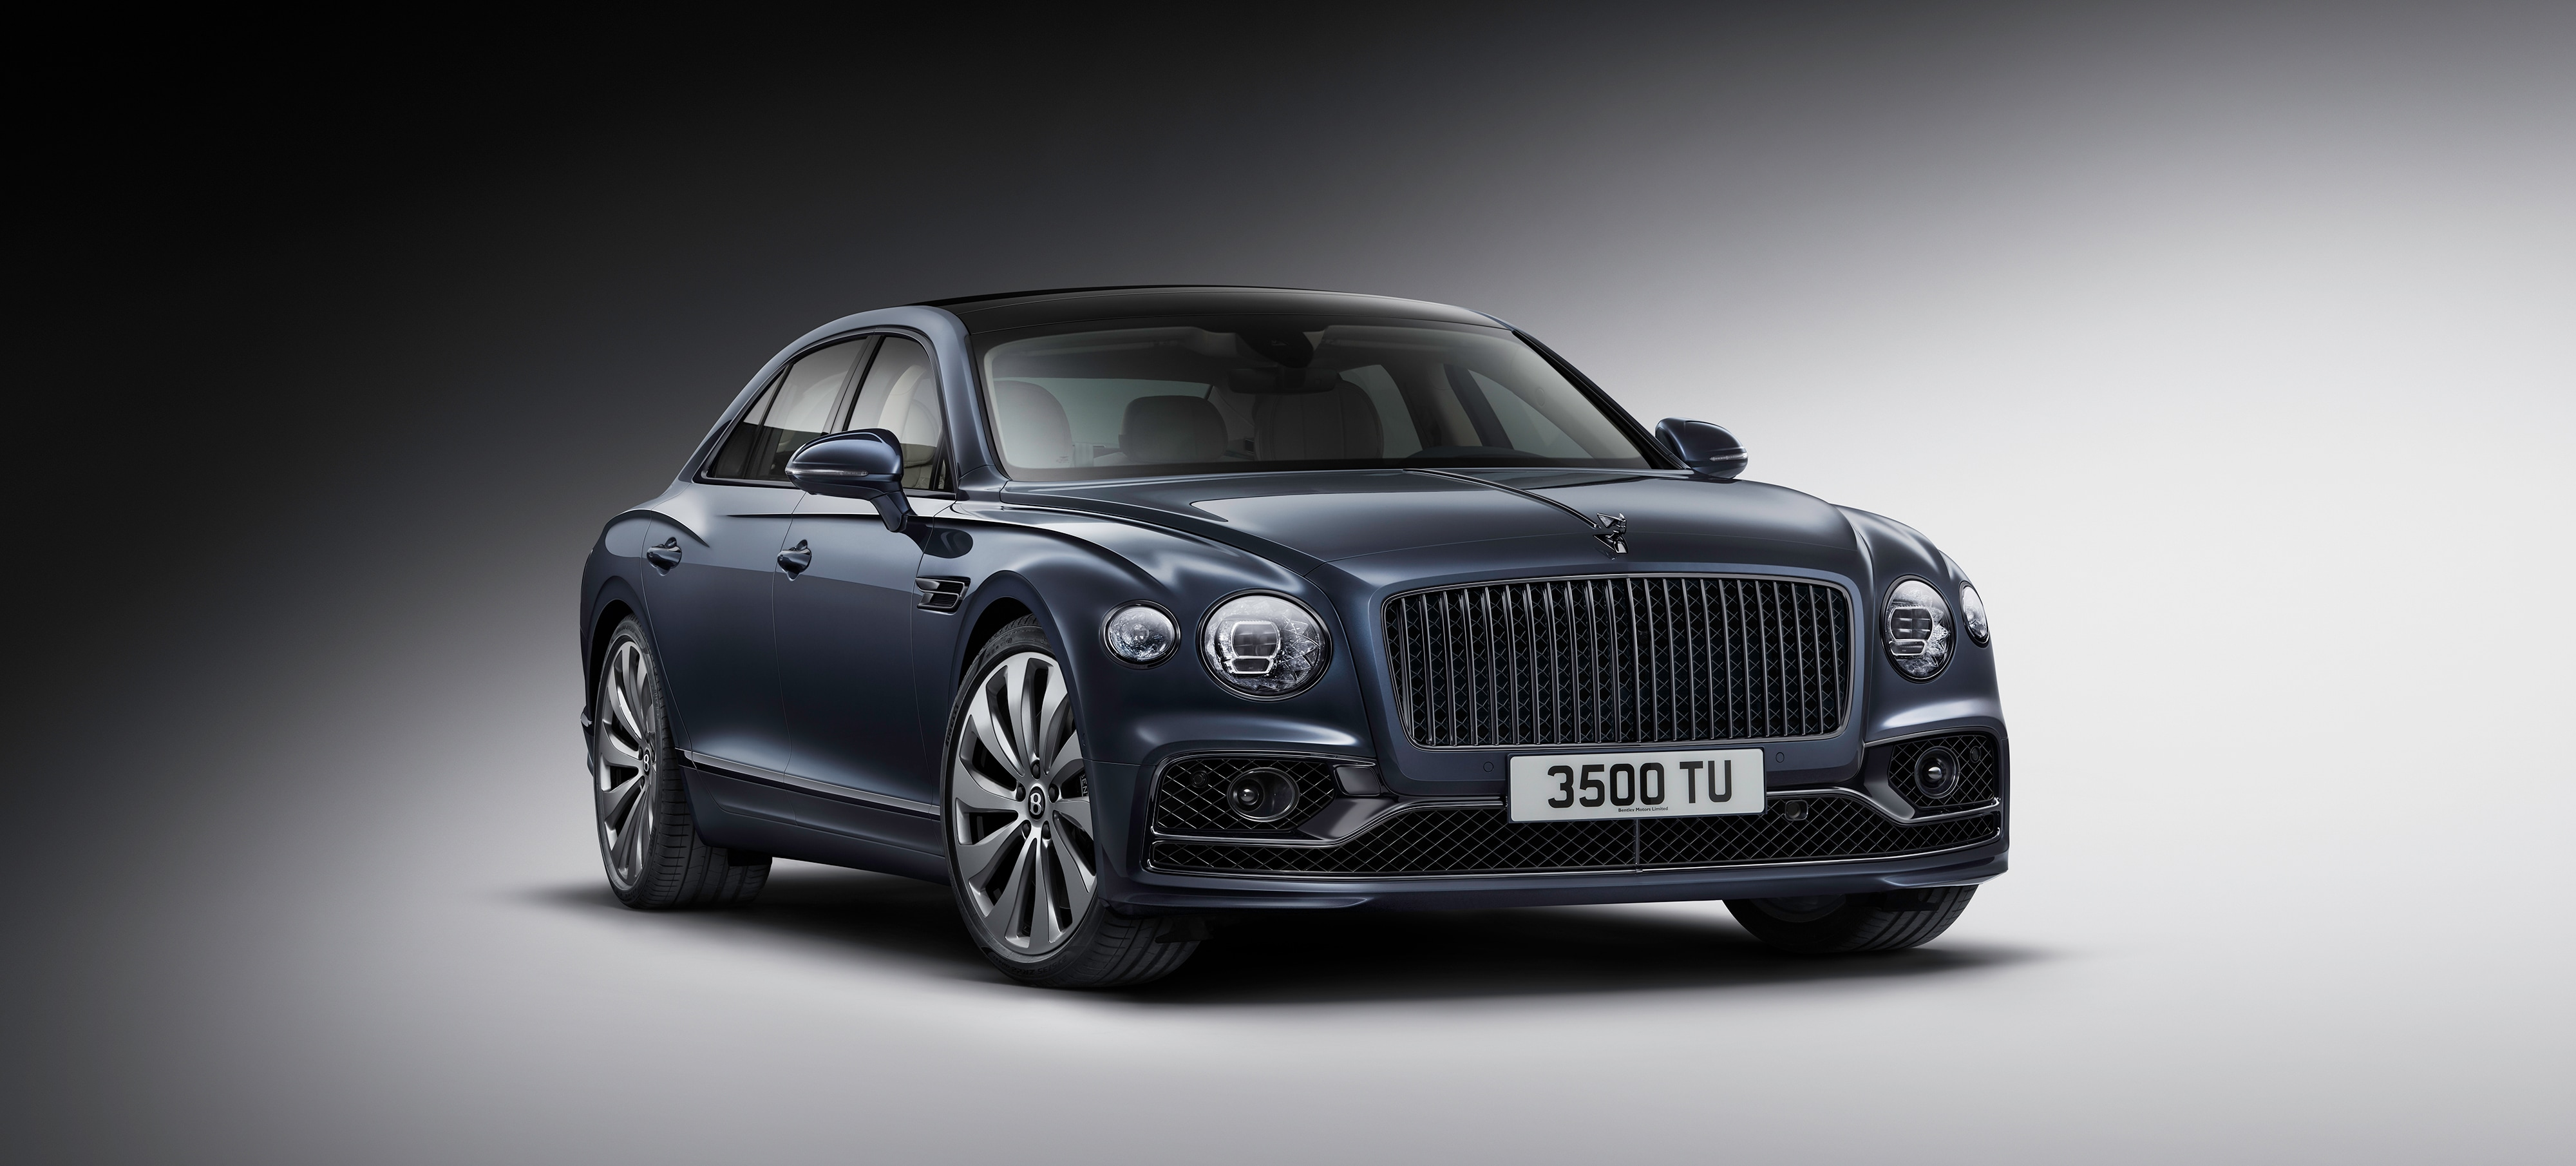 How Are Bentley Cars Made Bentley Parsippany